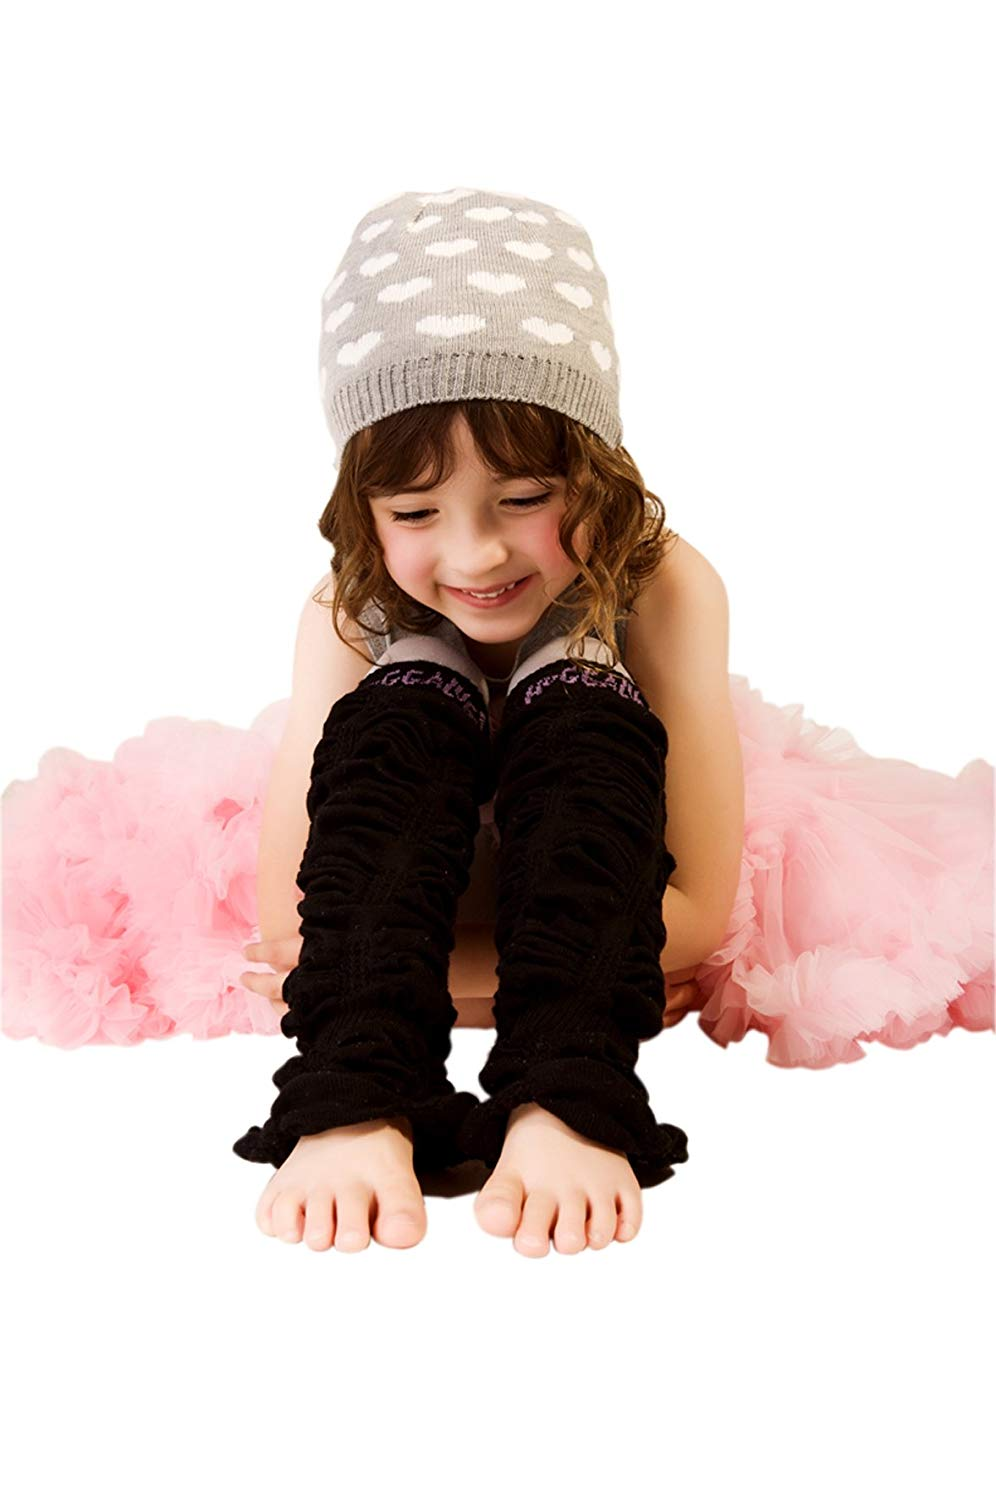 Huggalugs Girls Ombre Legruffle Legwarmers in 2 Color Choices